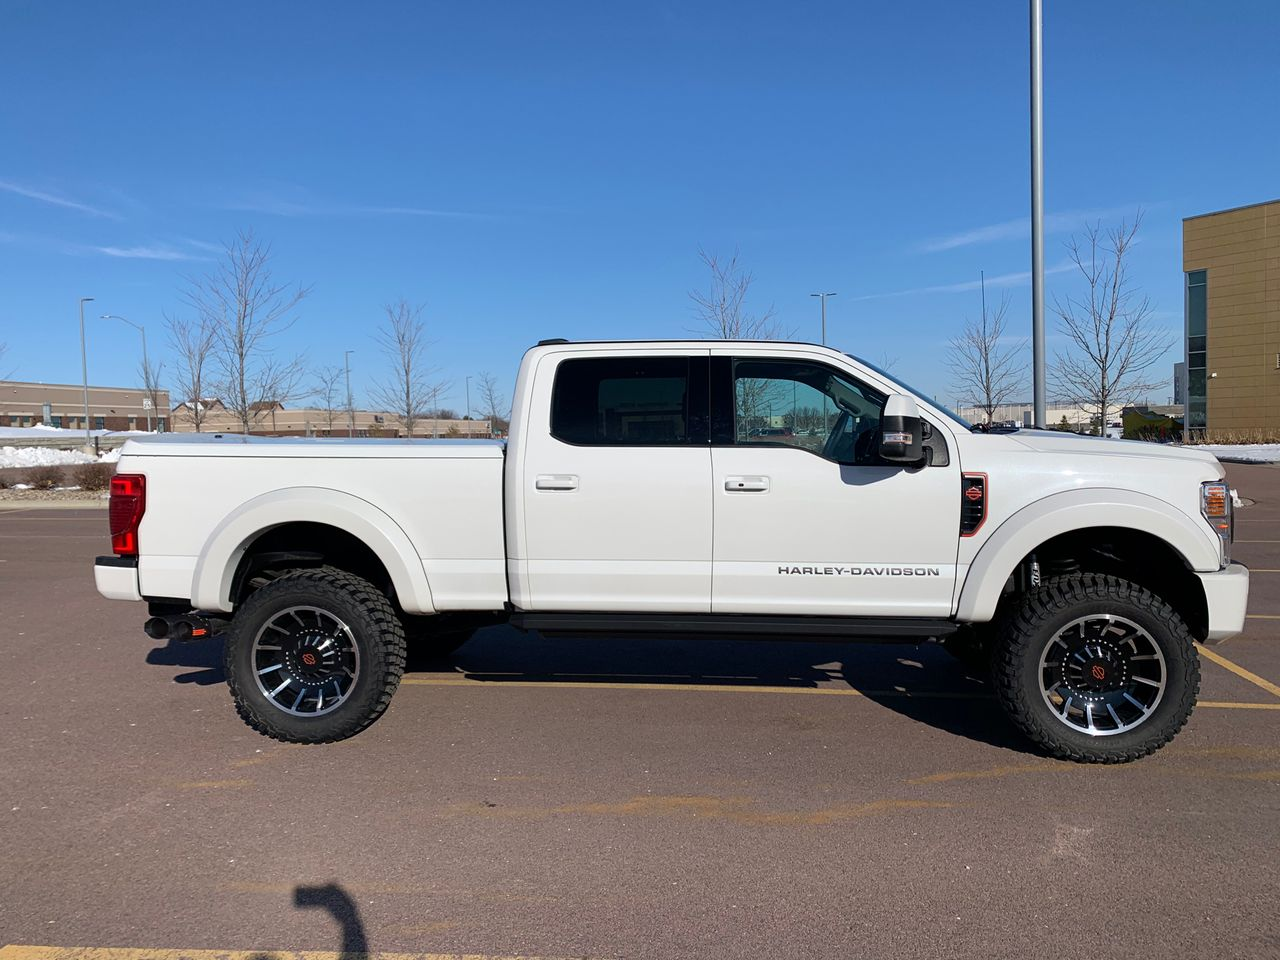 2020 Ford F-250 Super Duty Platinum | Sioux Falls, SD, Star White Metallic Tri-Coat (White), 4X4